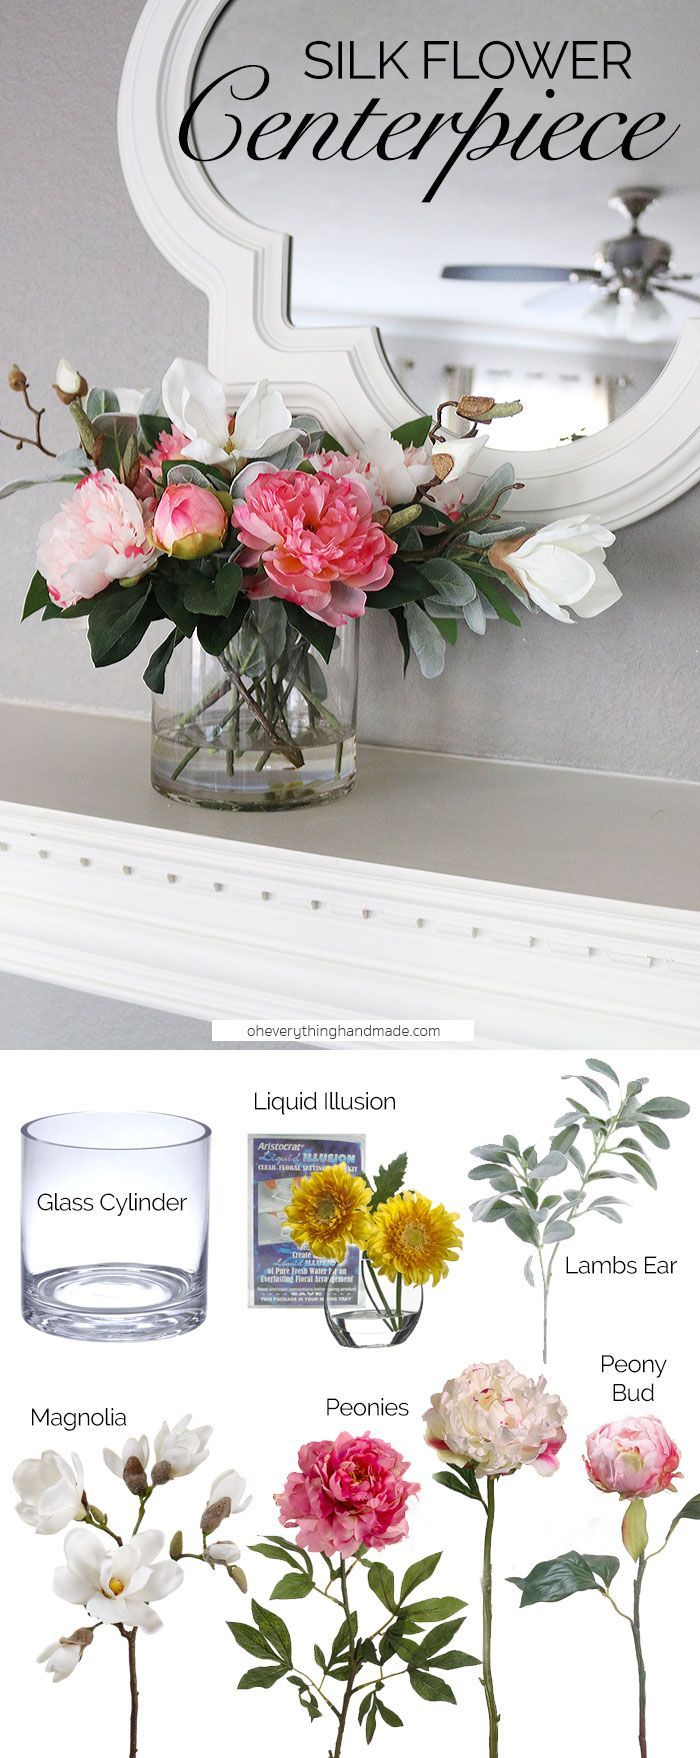 Make a gorgeous silk flower arrangement for your mantle or dining table with faux flowers and liquid illusion from http://afloral.com. Design by Oh Everything Handmade. #diy